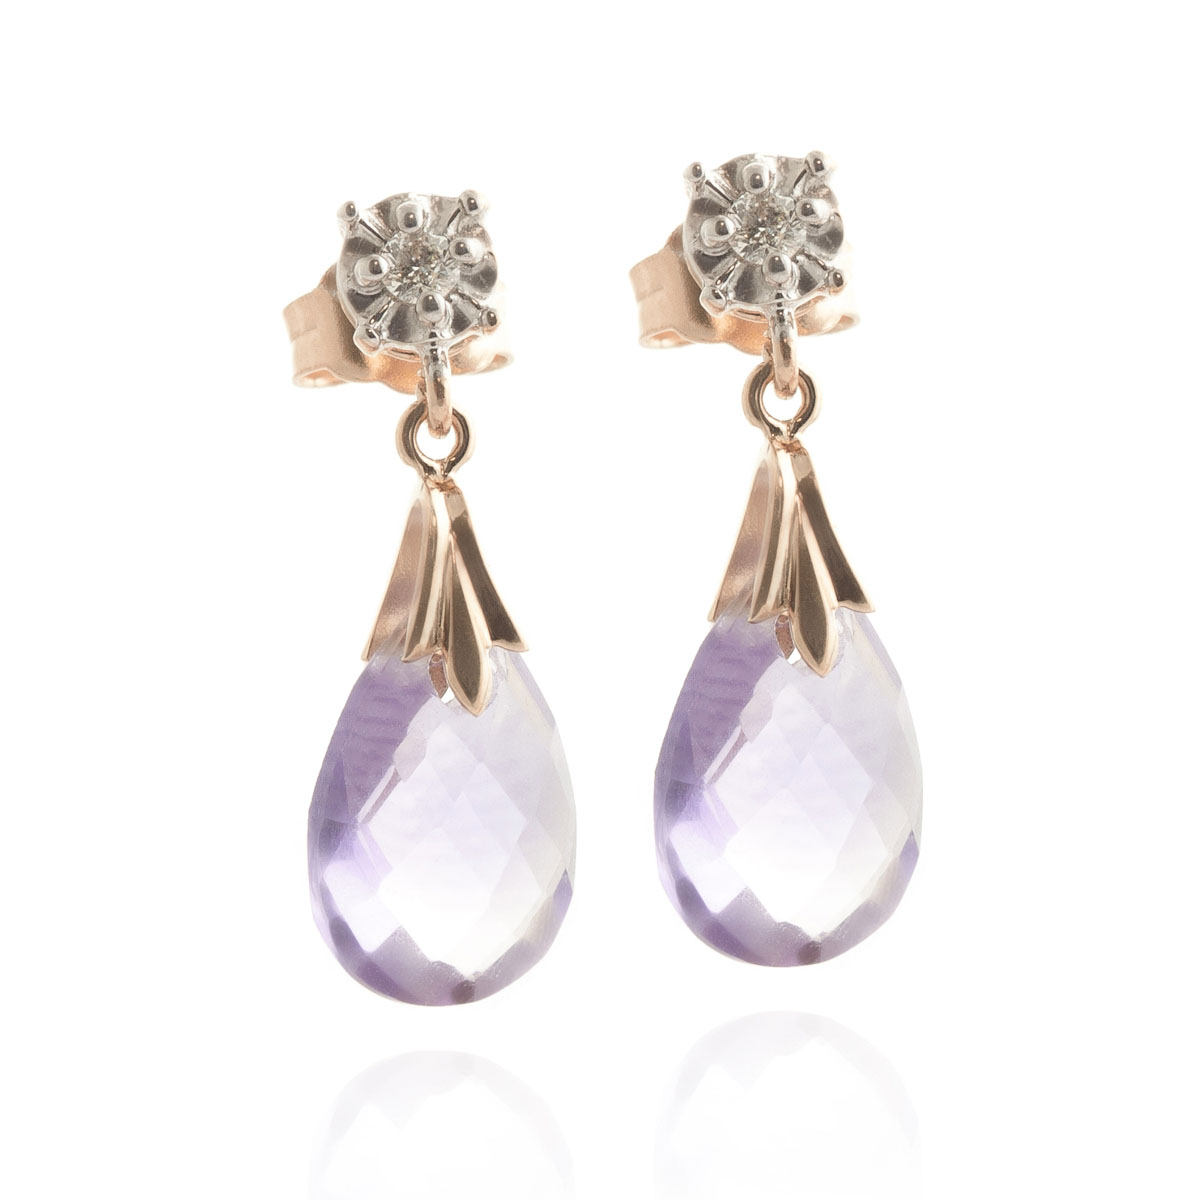 Amethyst & Diamond Comet Stud Earrings in 9ct Rose Gold